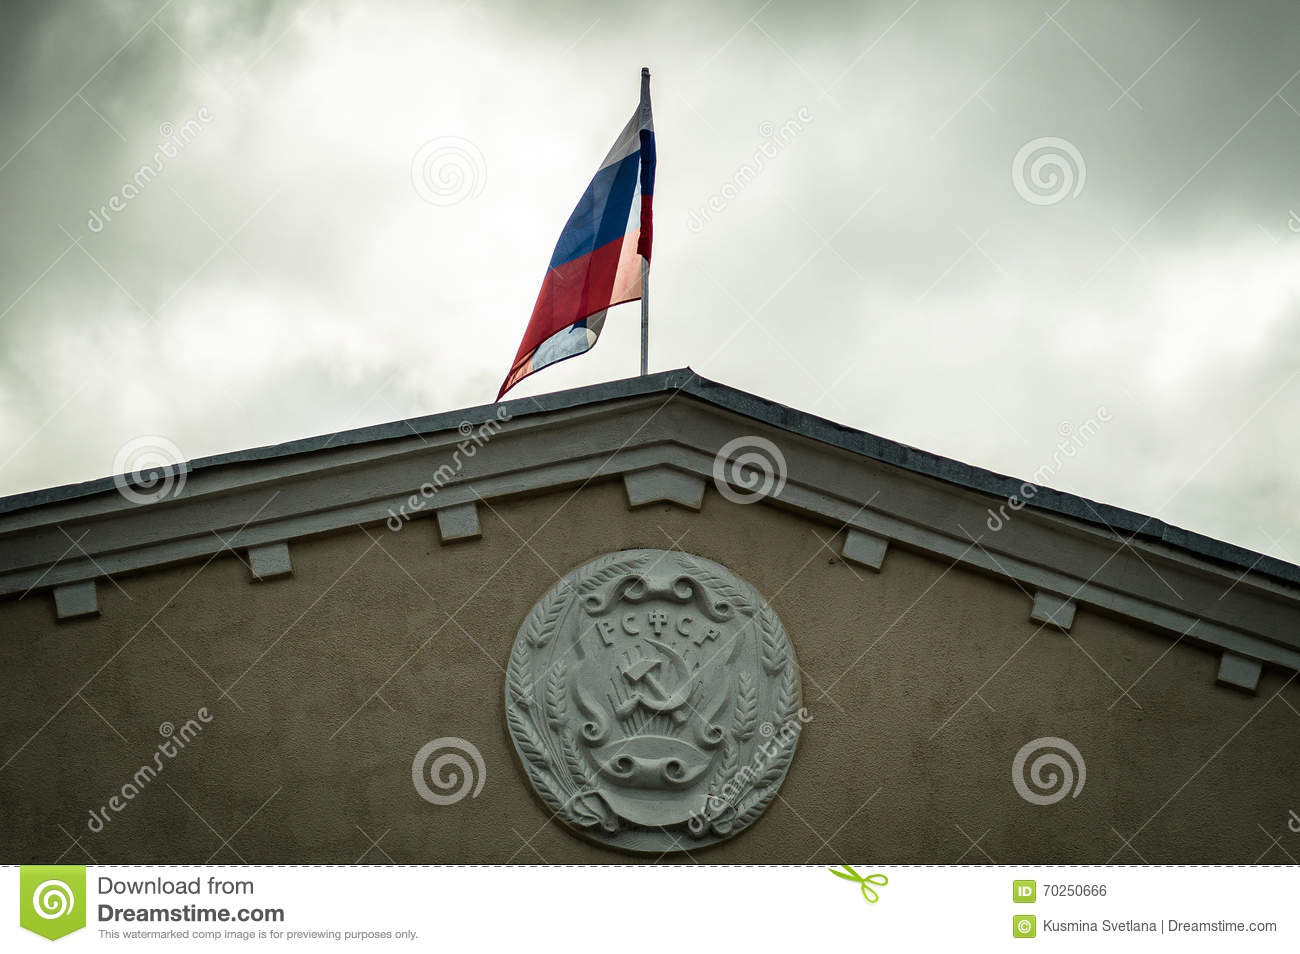 the coat of arms of the rsfsr and the russian flag on the